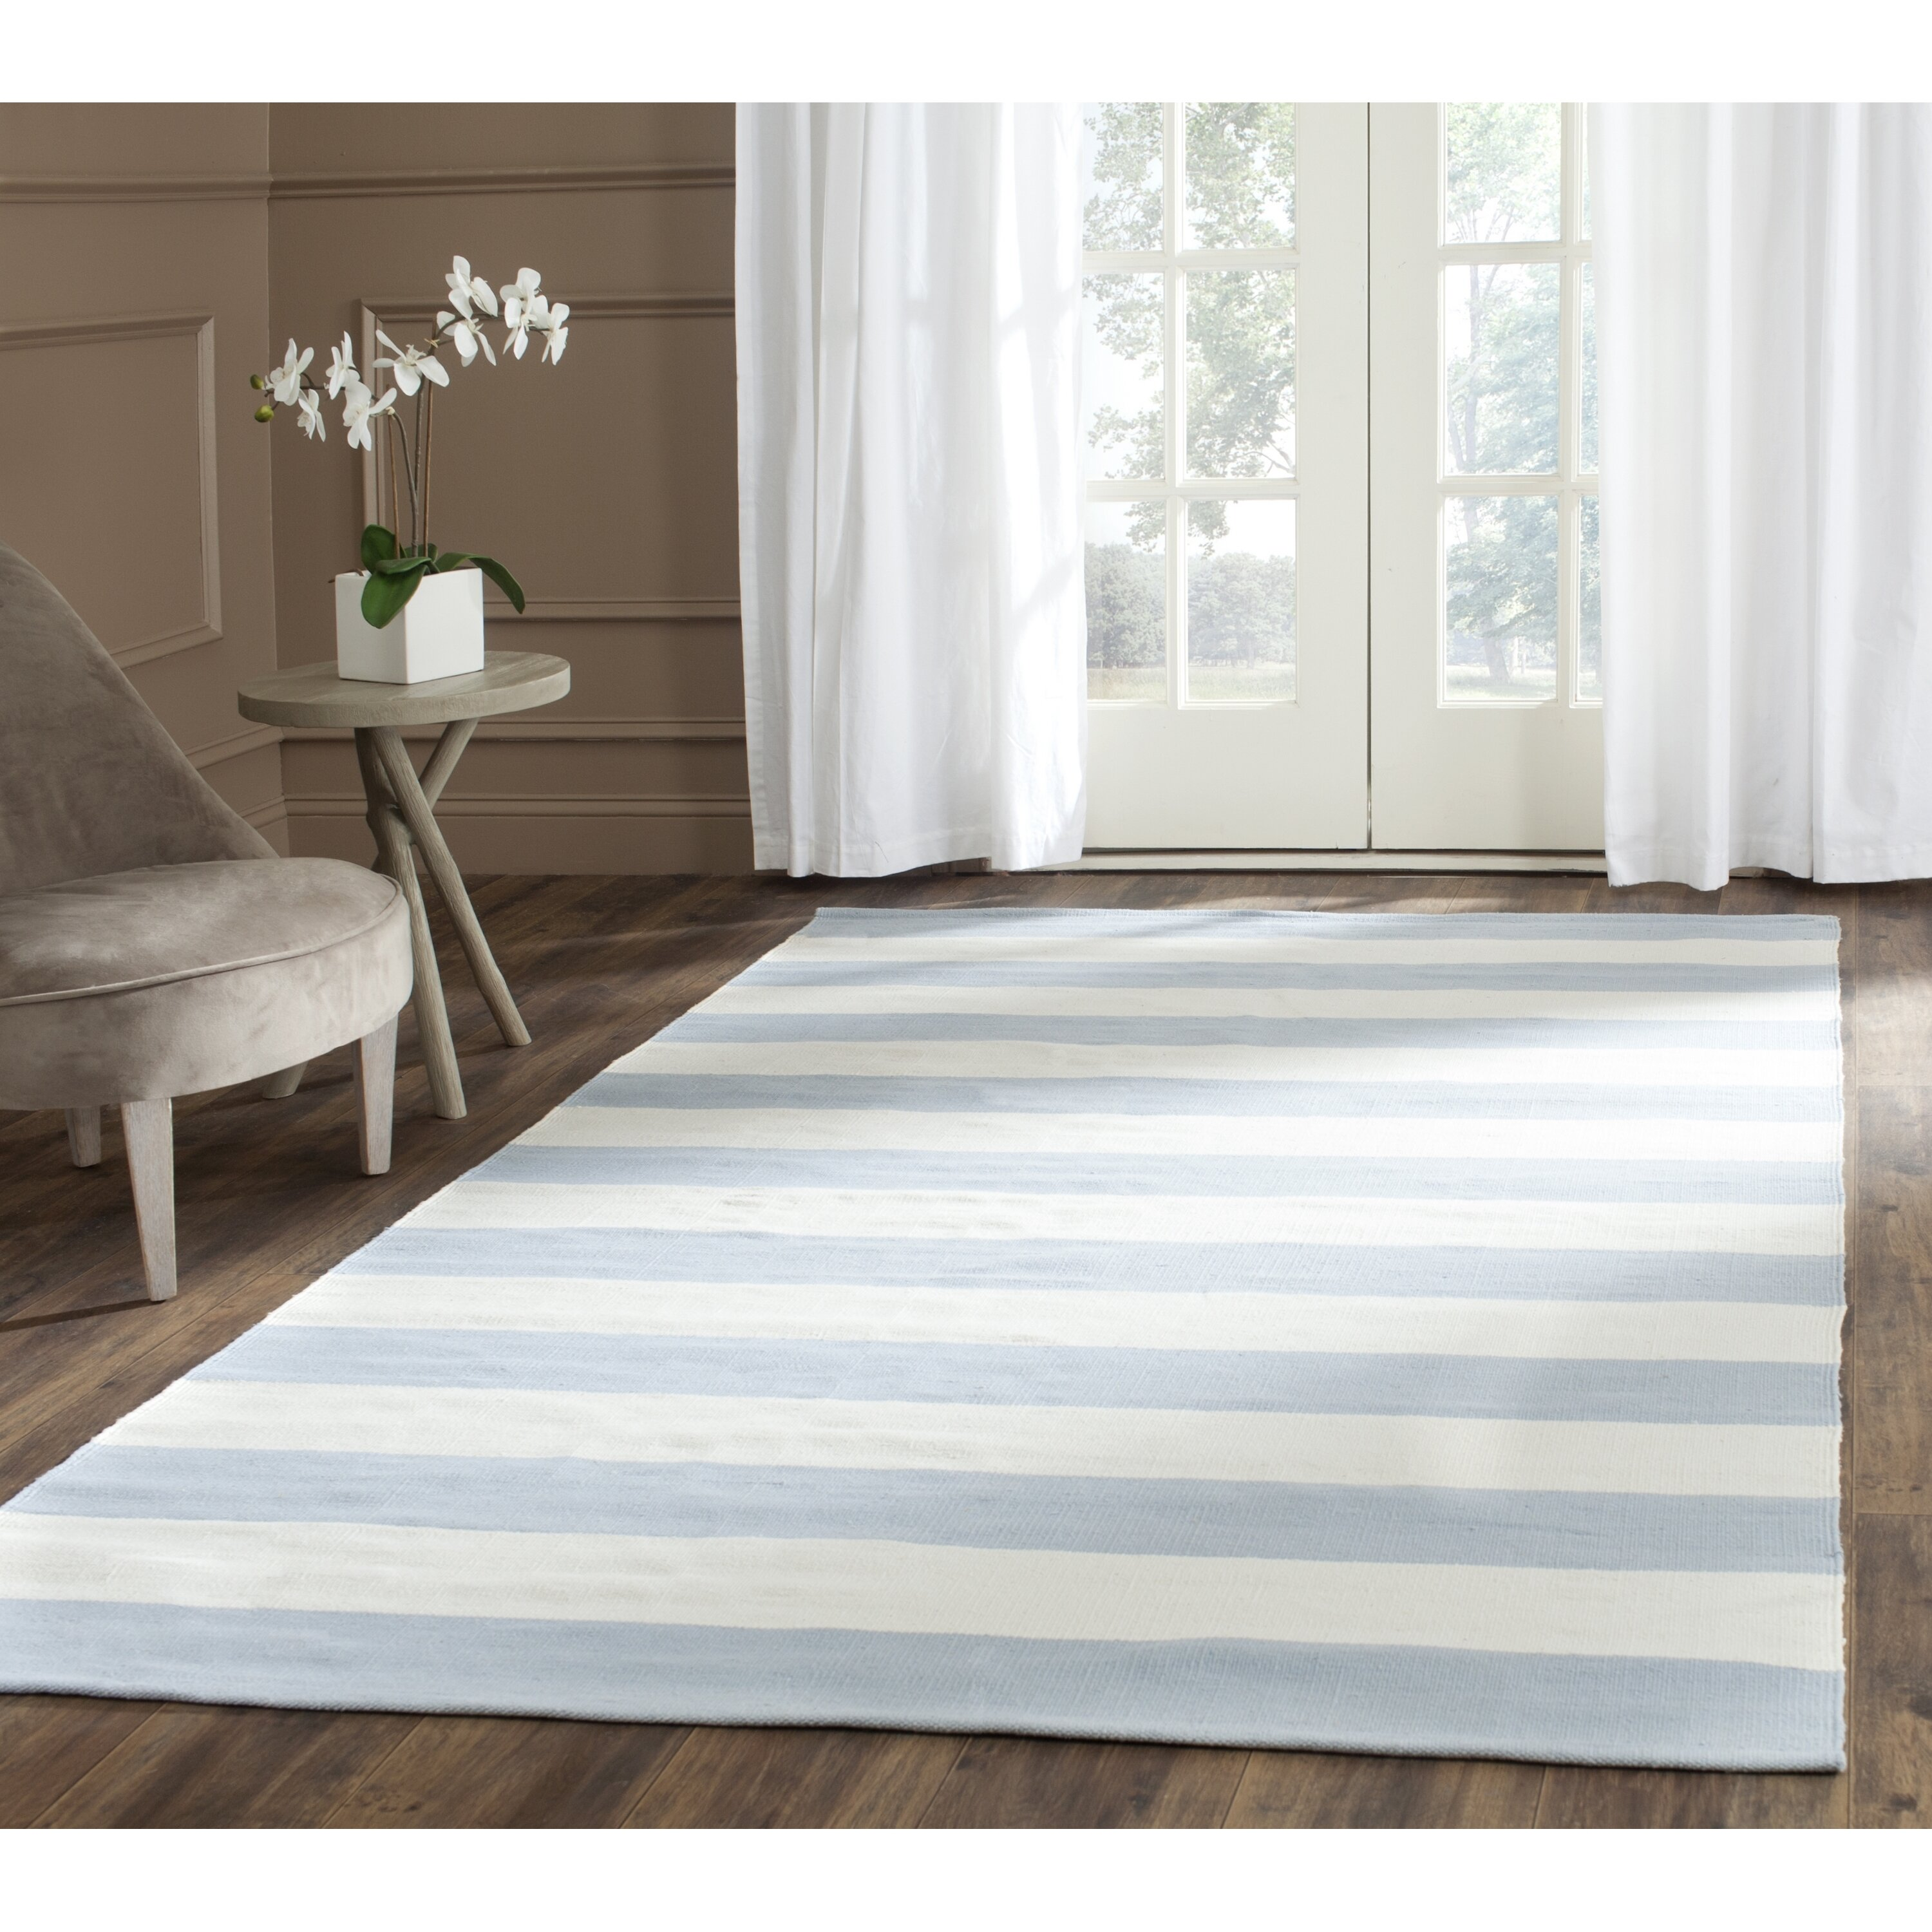 safavieh montauk sky blueivory area rug cheerful home office rug wayfair safavieh